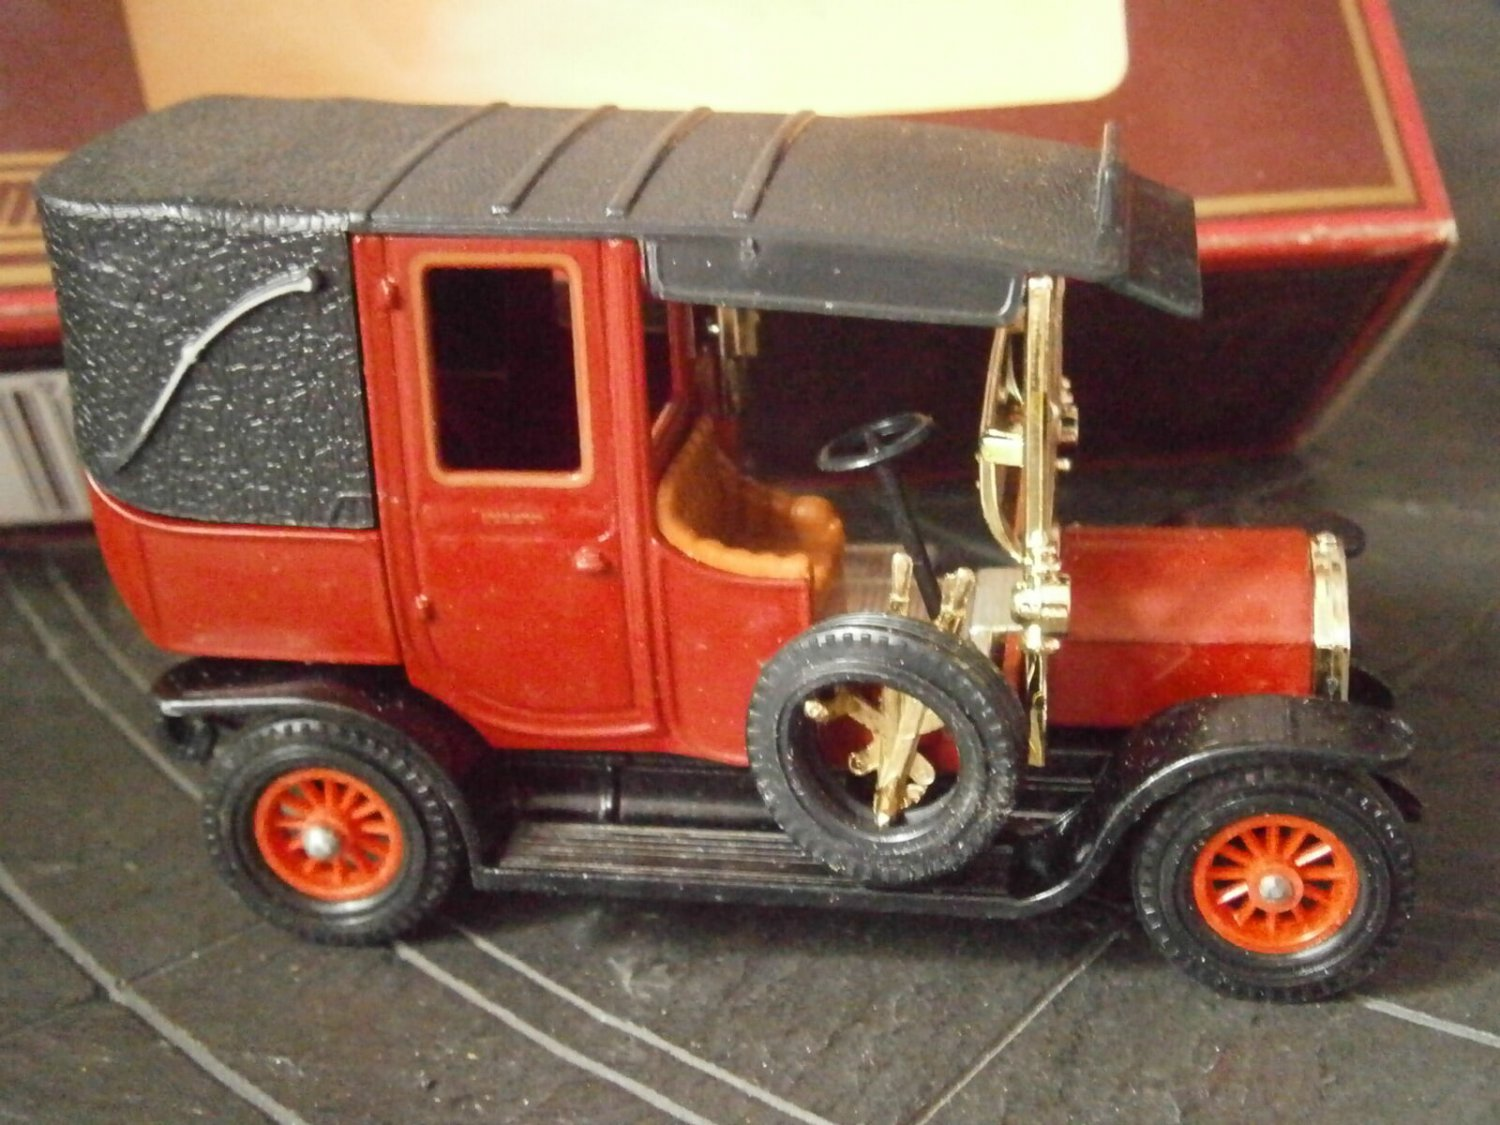 MATCHBOX Models YESTERYEAR UNIC Taxi car 1907 Y-28 Original edition 1984 in gift box